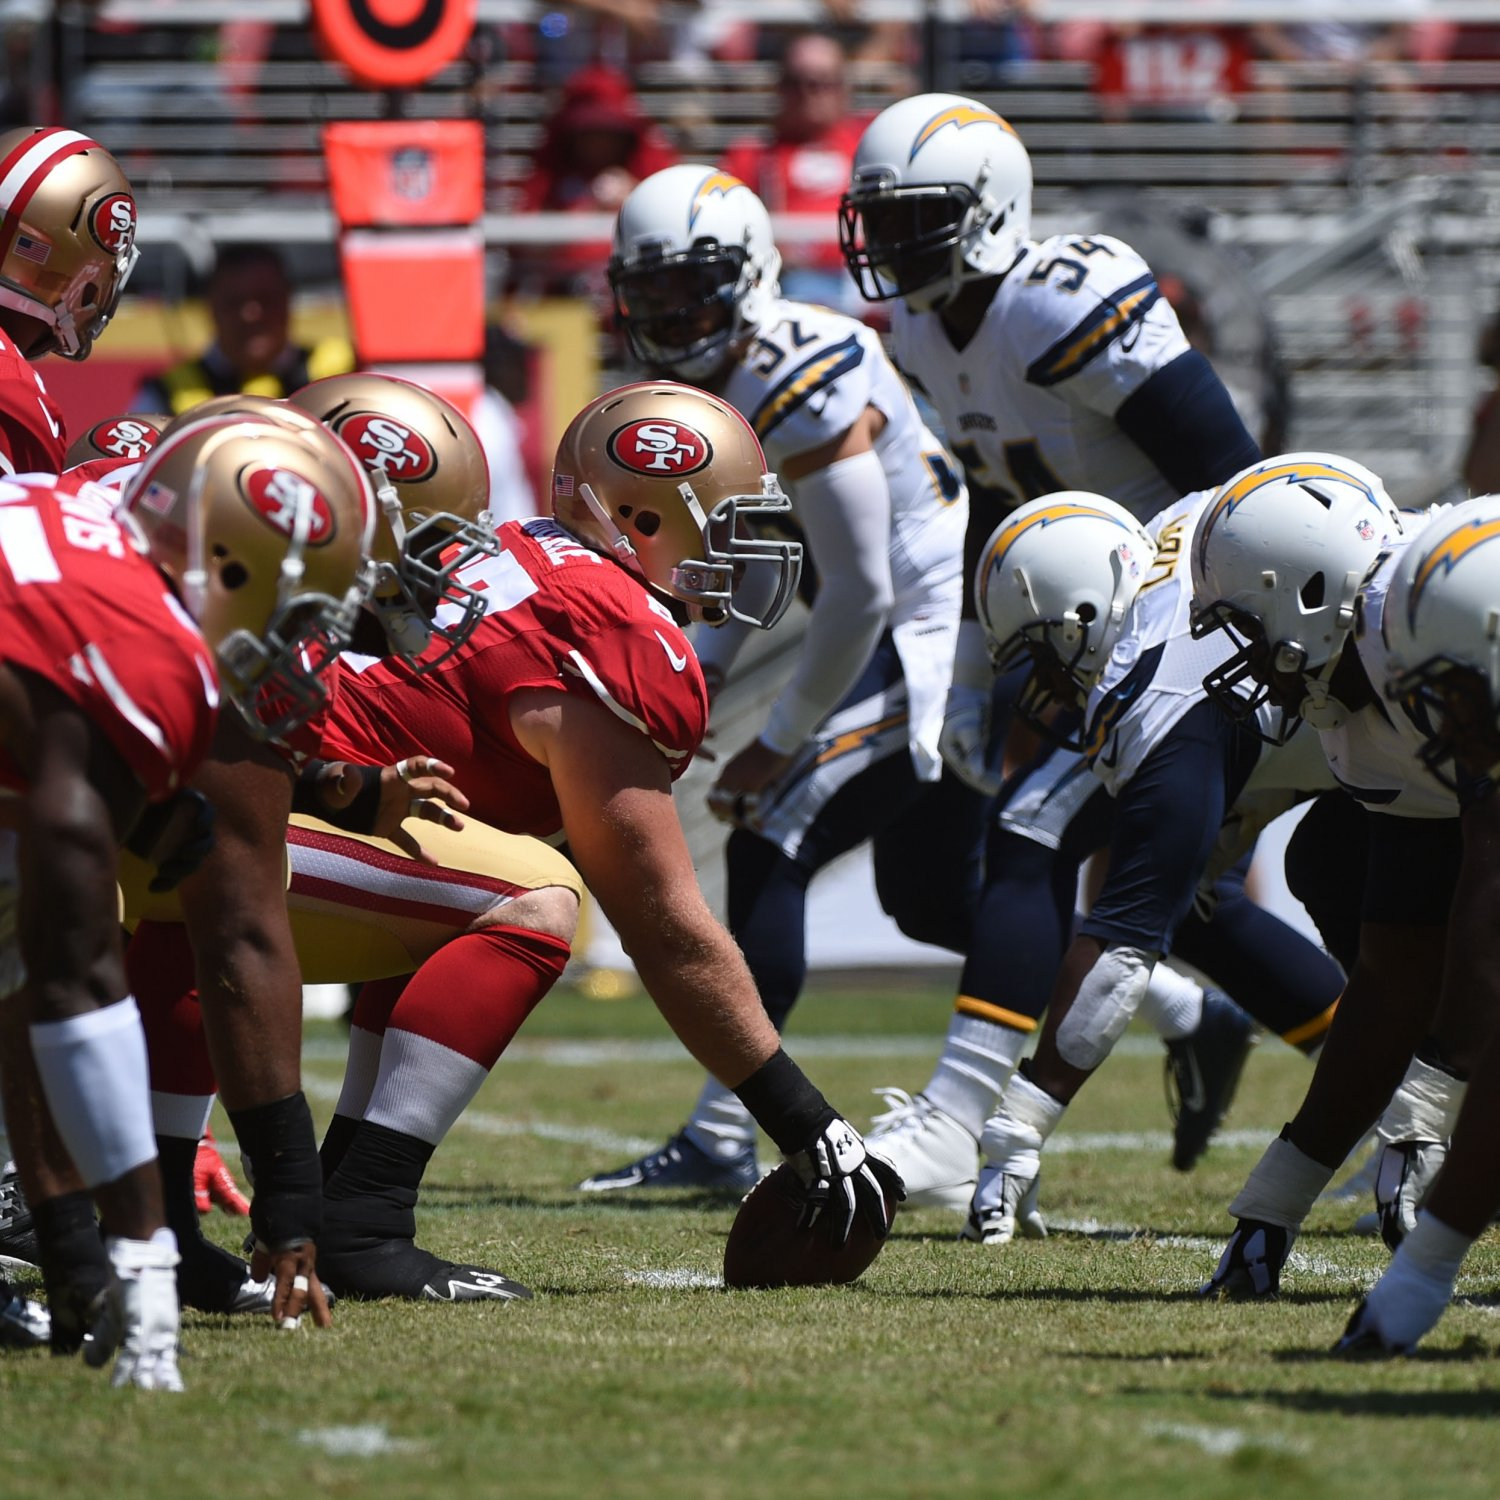 San Diego Chargers Bye Week 2014: Chargers Vs. 49ers: Complete Week 16 Preview For San Diego